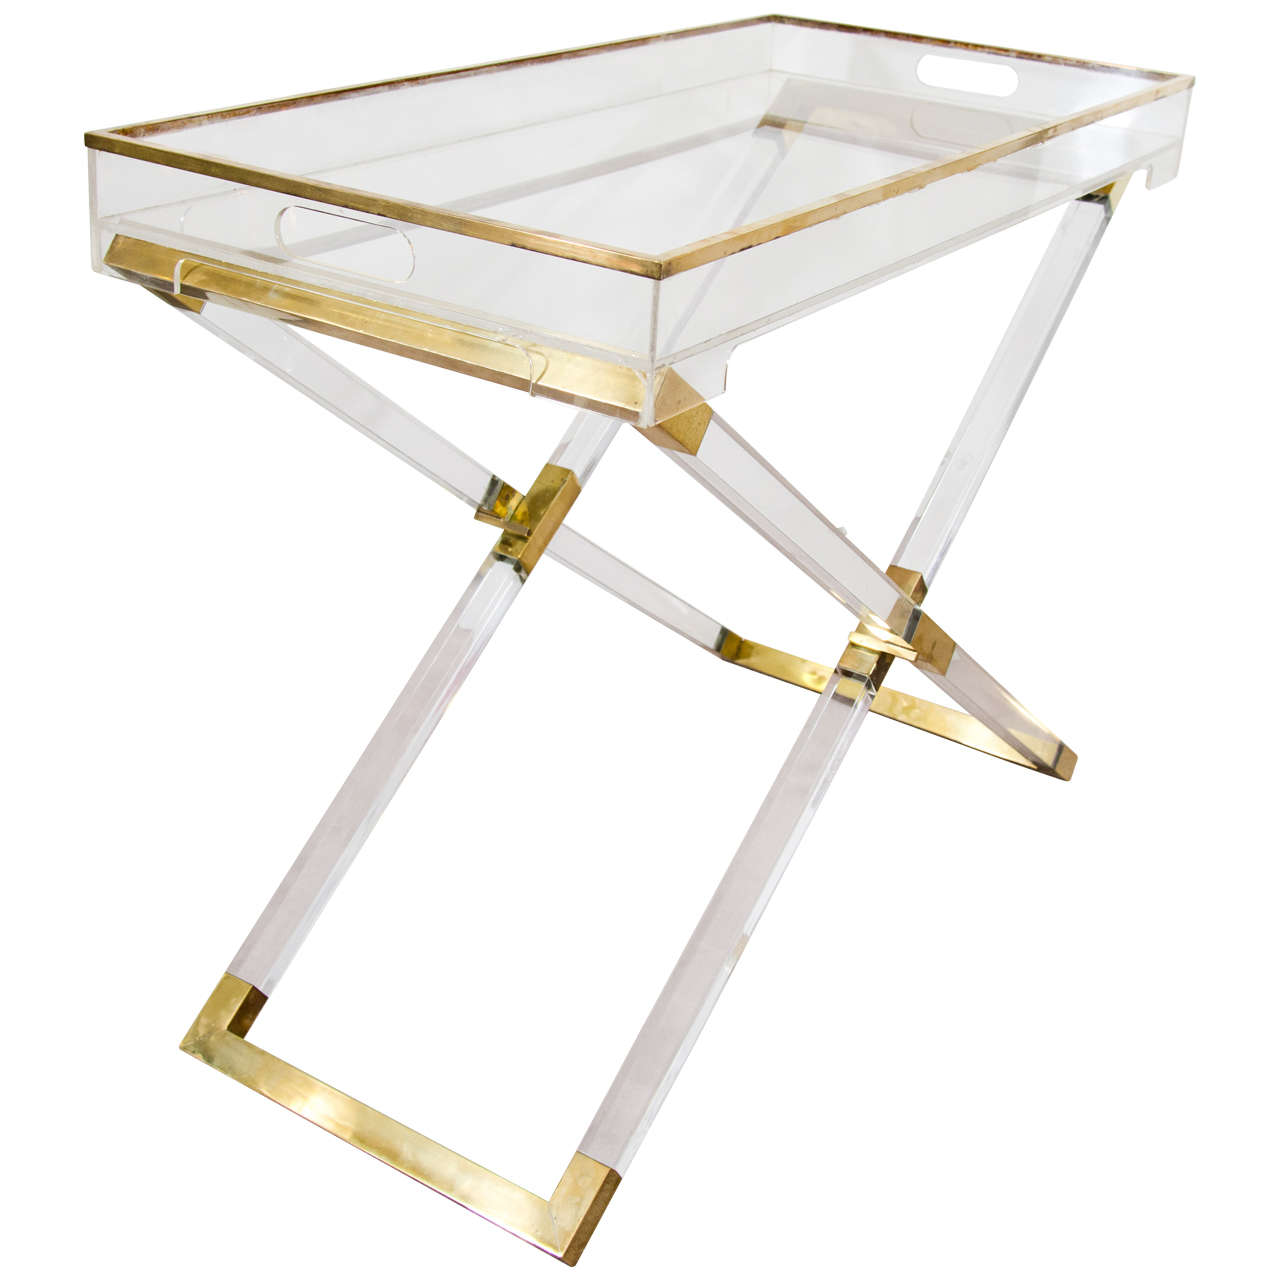 Midcentury Folding Tray Table or Bar Console Attributed to Philippe